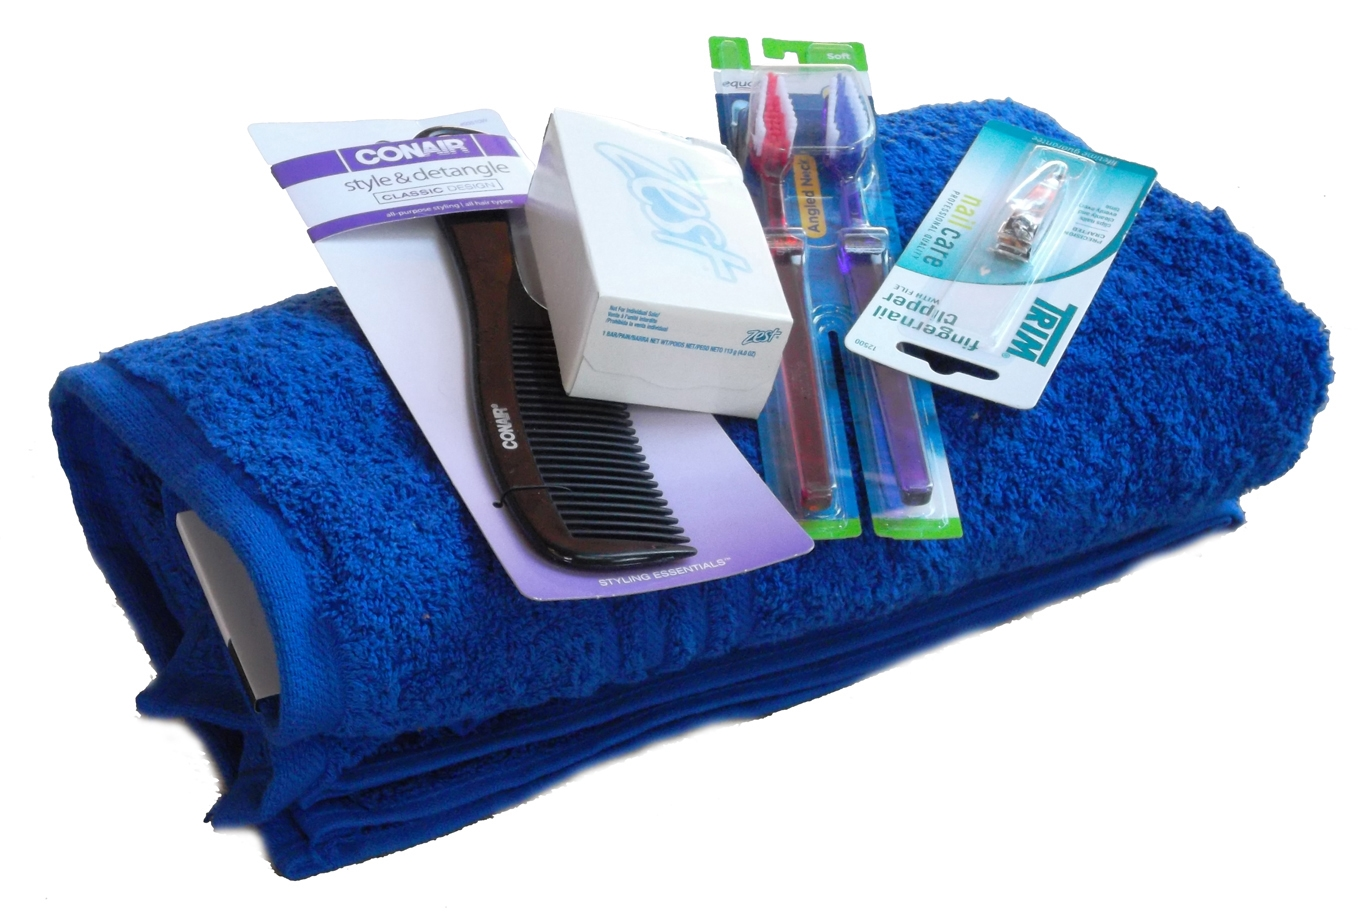 Personal care kits - Blessing those in need